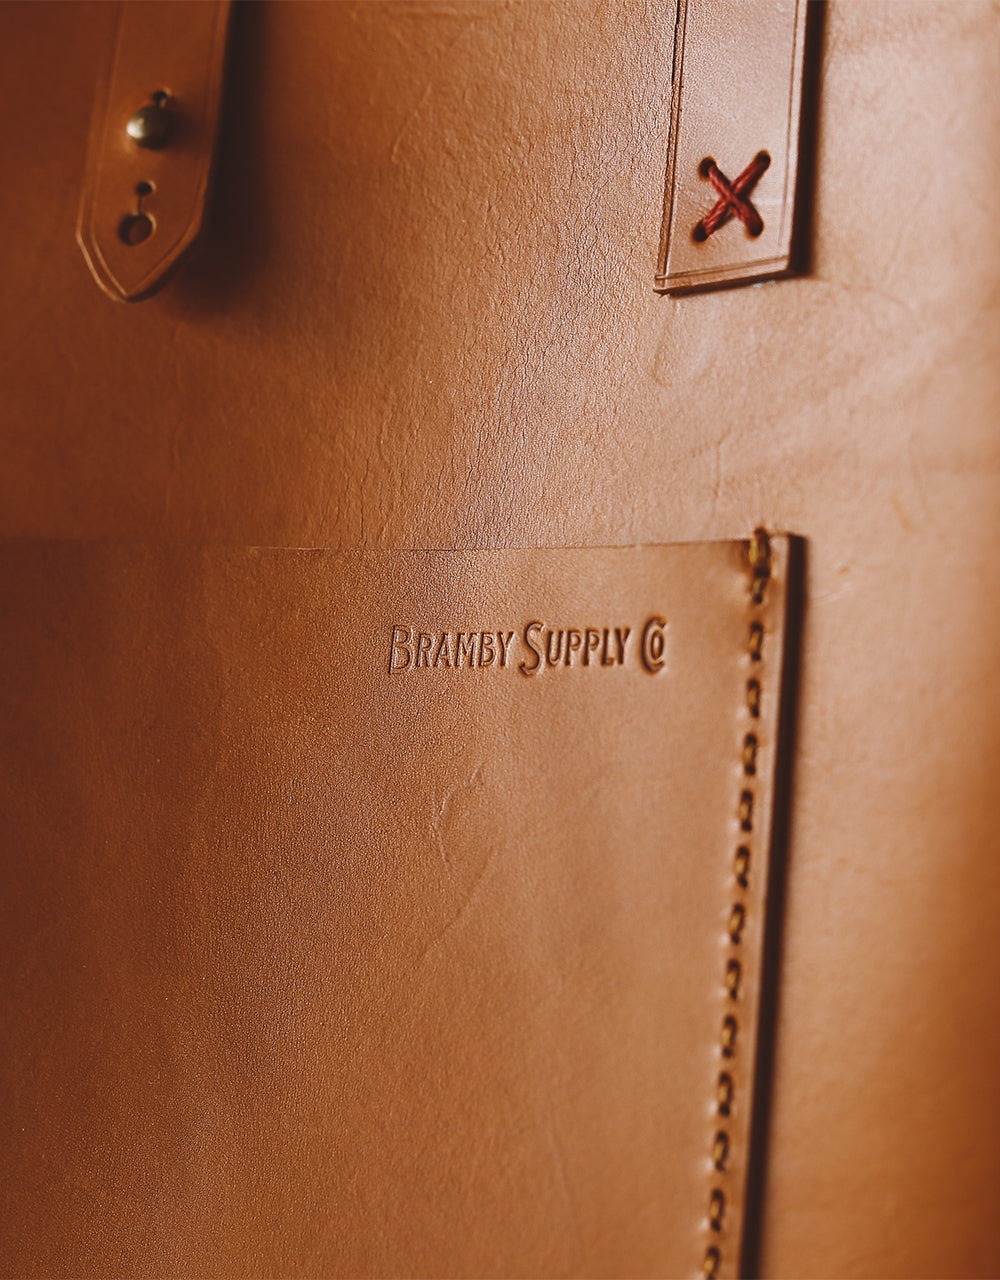 The Blamby Porter(Brown Leather)